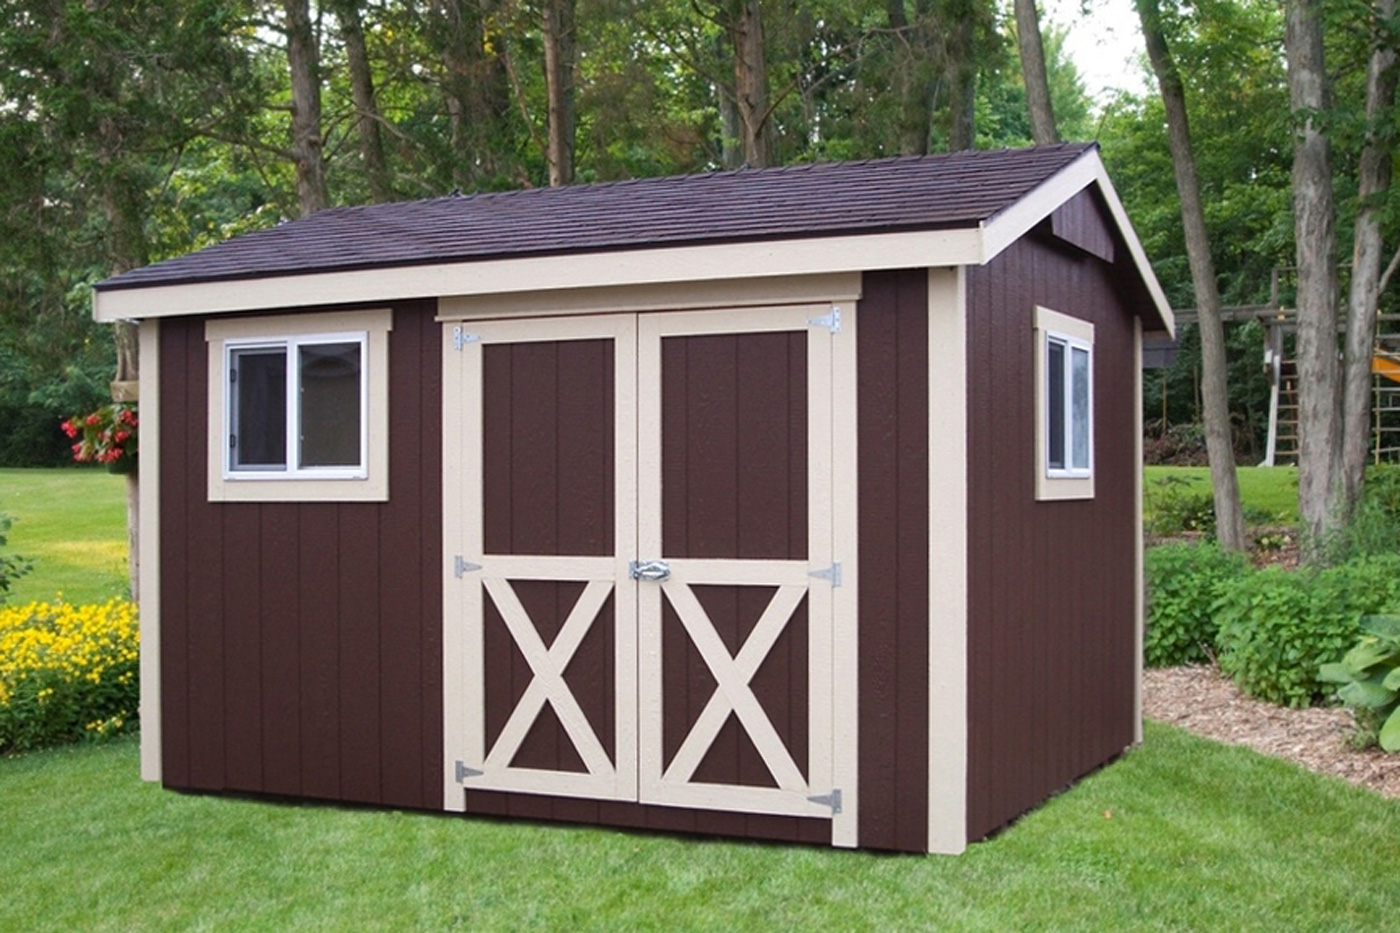 hei storage spin qlt building arrow p shed sheds barn x roof wid prod